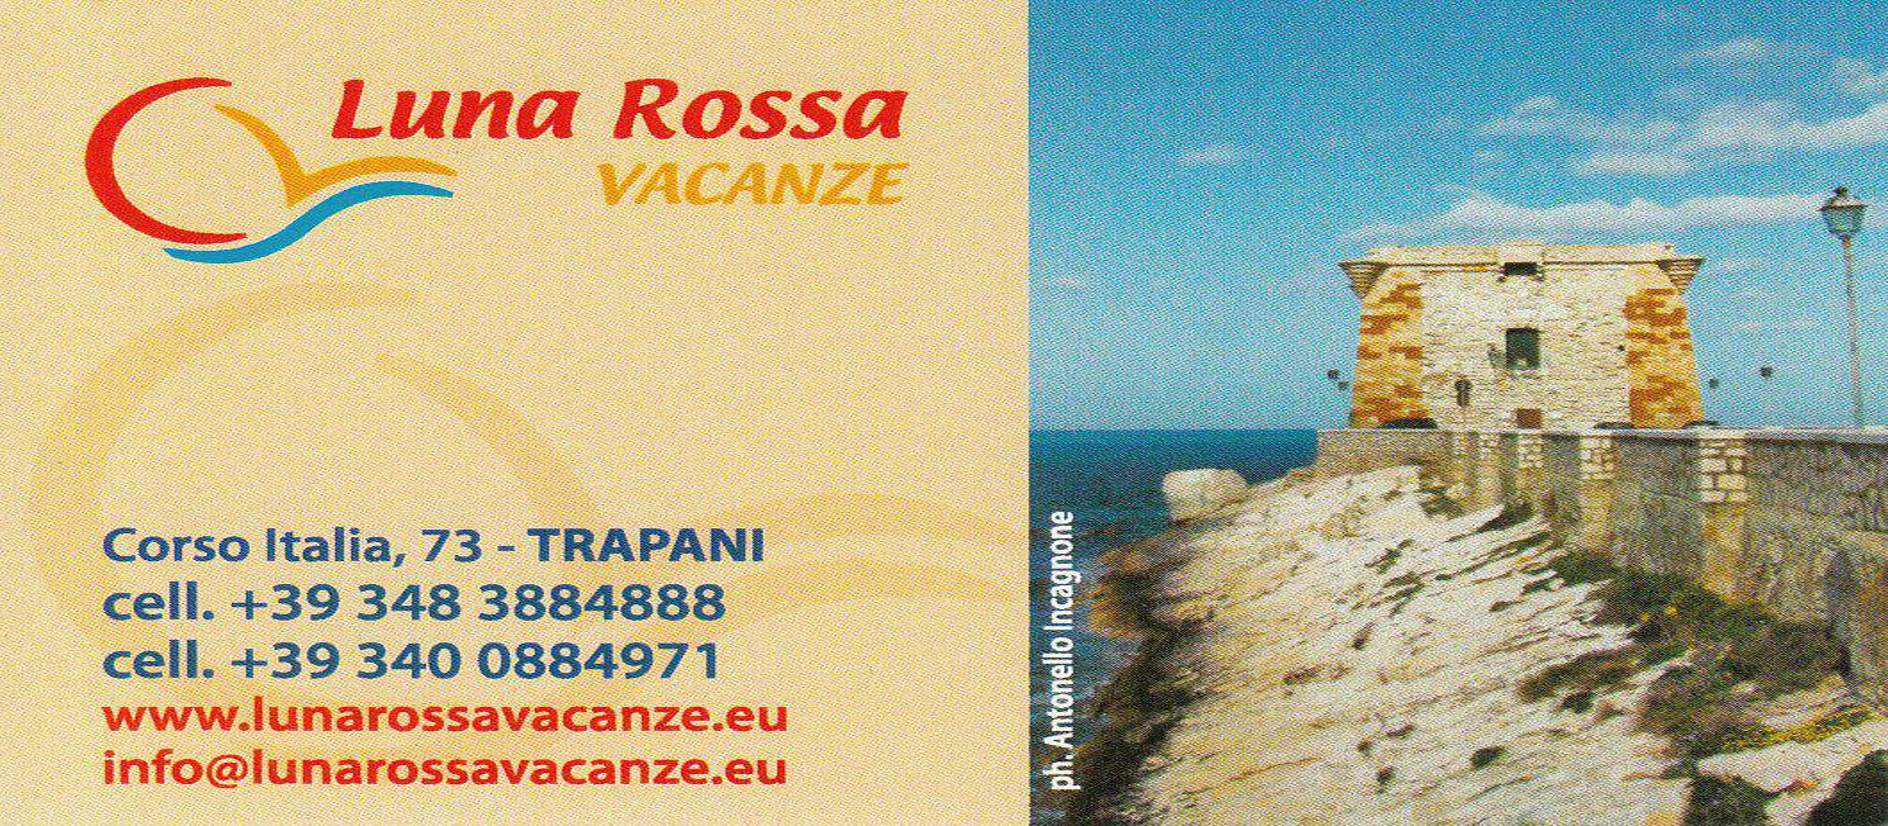 IN THE HEART OF TRAPANI HOLIDAYS